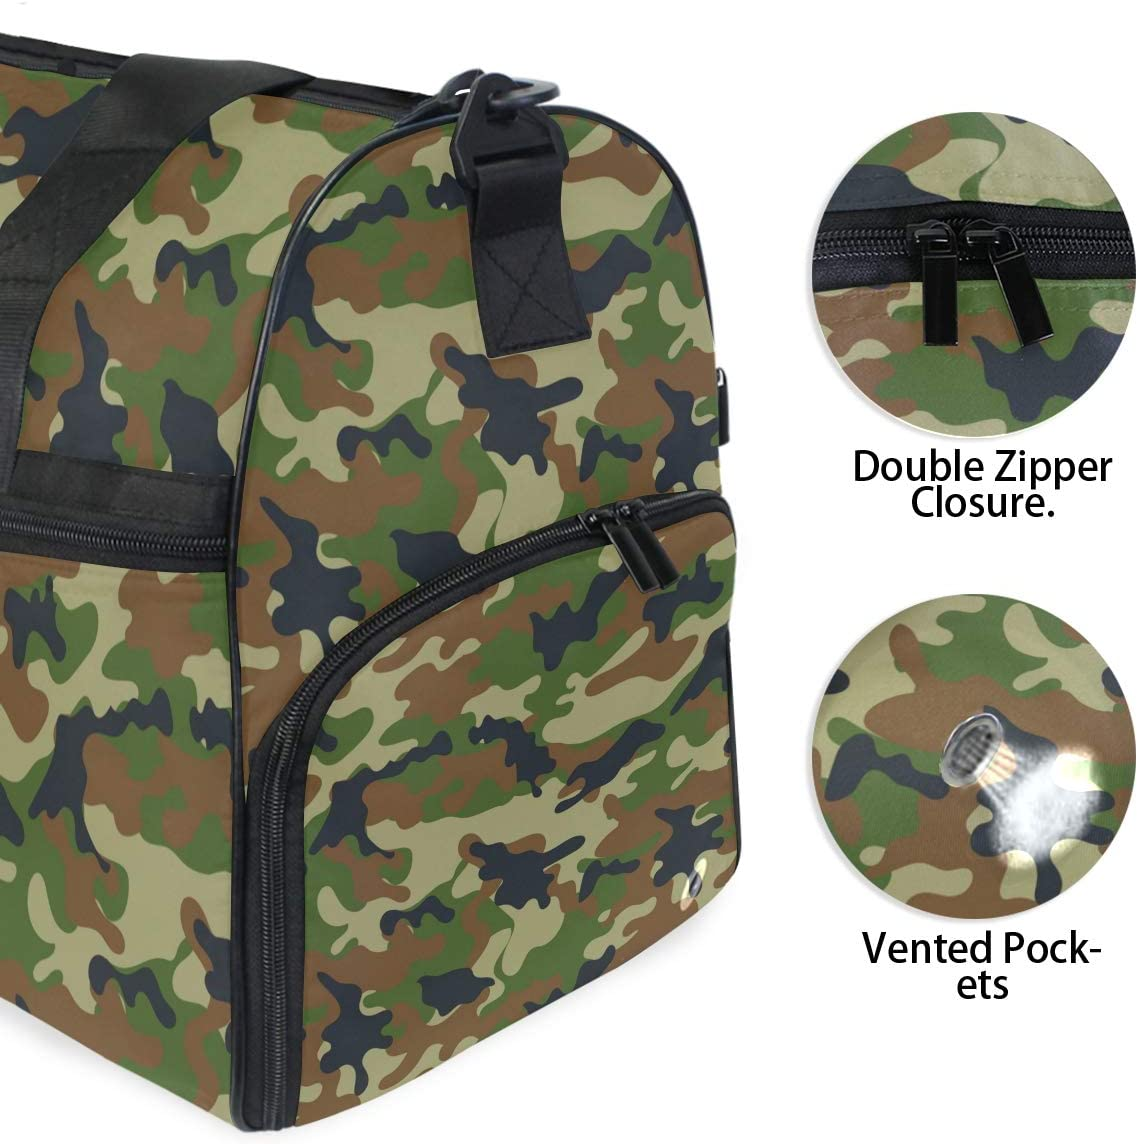 ALAZA Stylish Camouflage Sports Gym Duffel Bag Travel Luggage Handbag Shoulder Bag with Shoes Compartment for Men Women